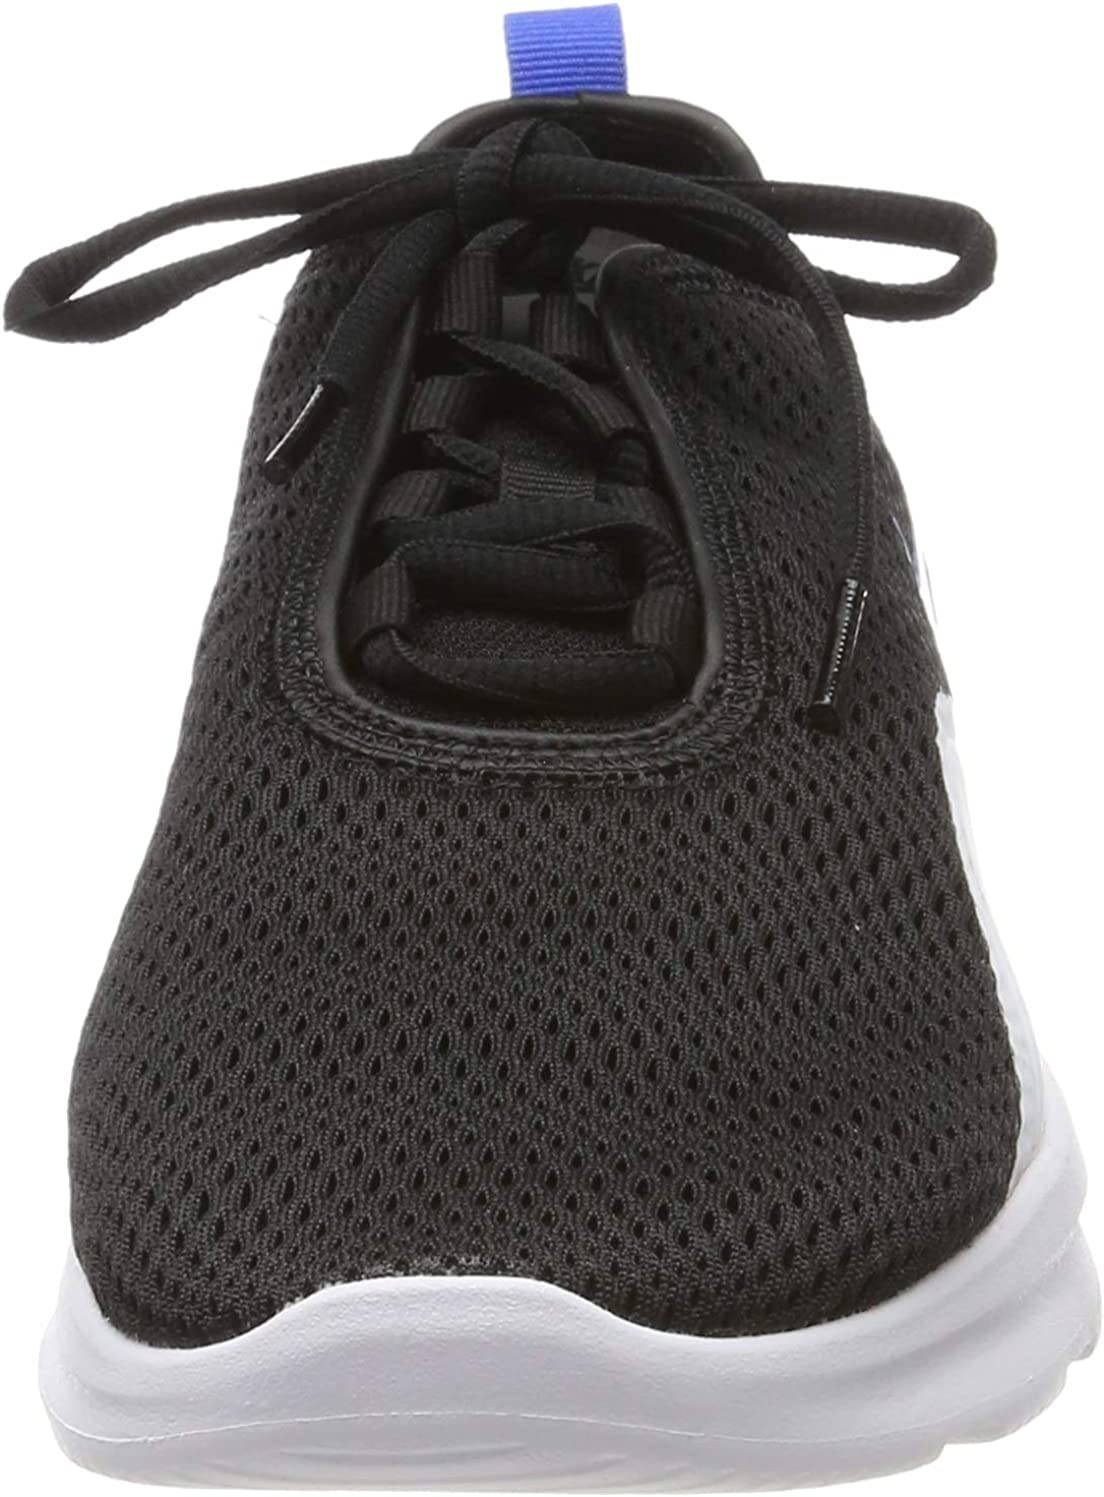 Nike Air Max Motion 2, Chaussures de Running Homme